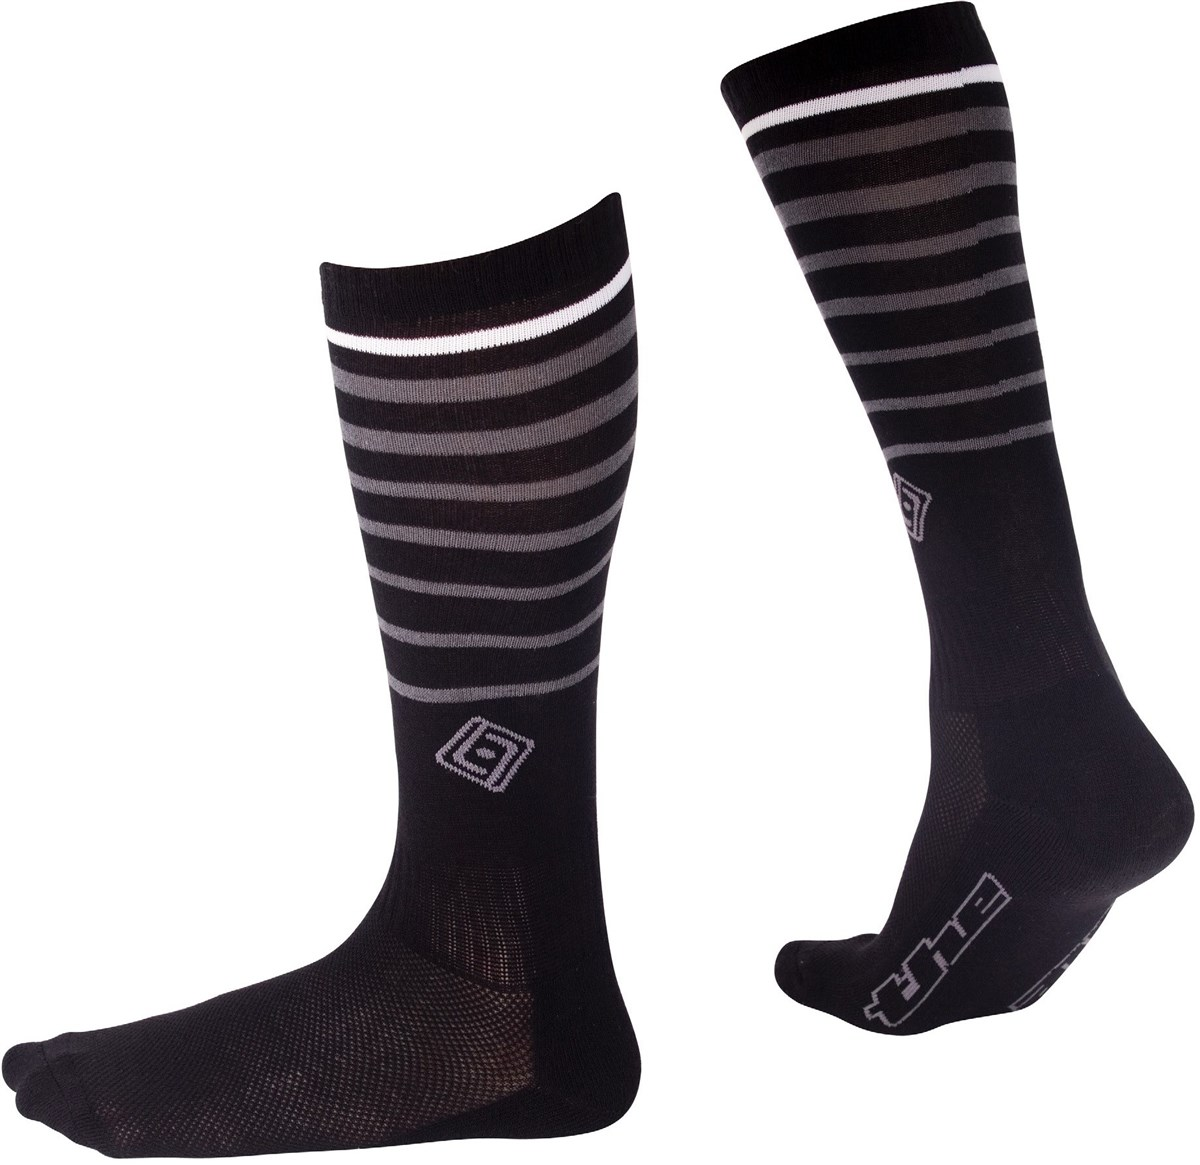 THE Industries Cosmo Socks